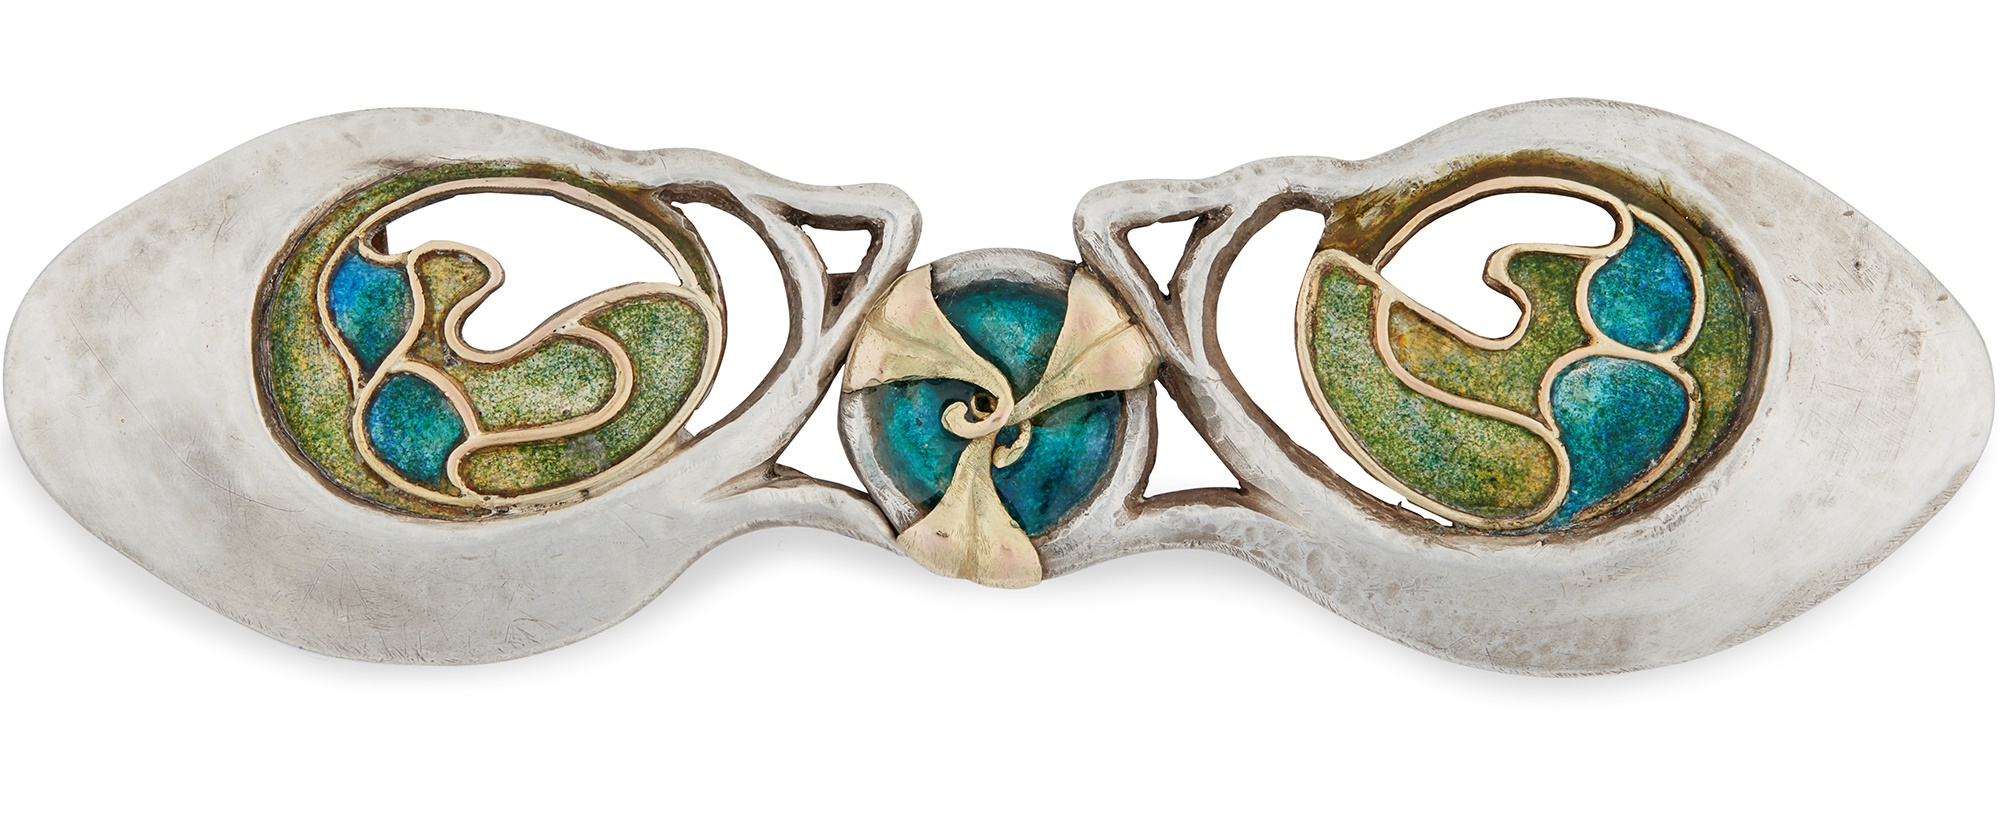 Jewellery & Silver Design & The Arts & Crafts Movement